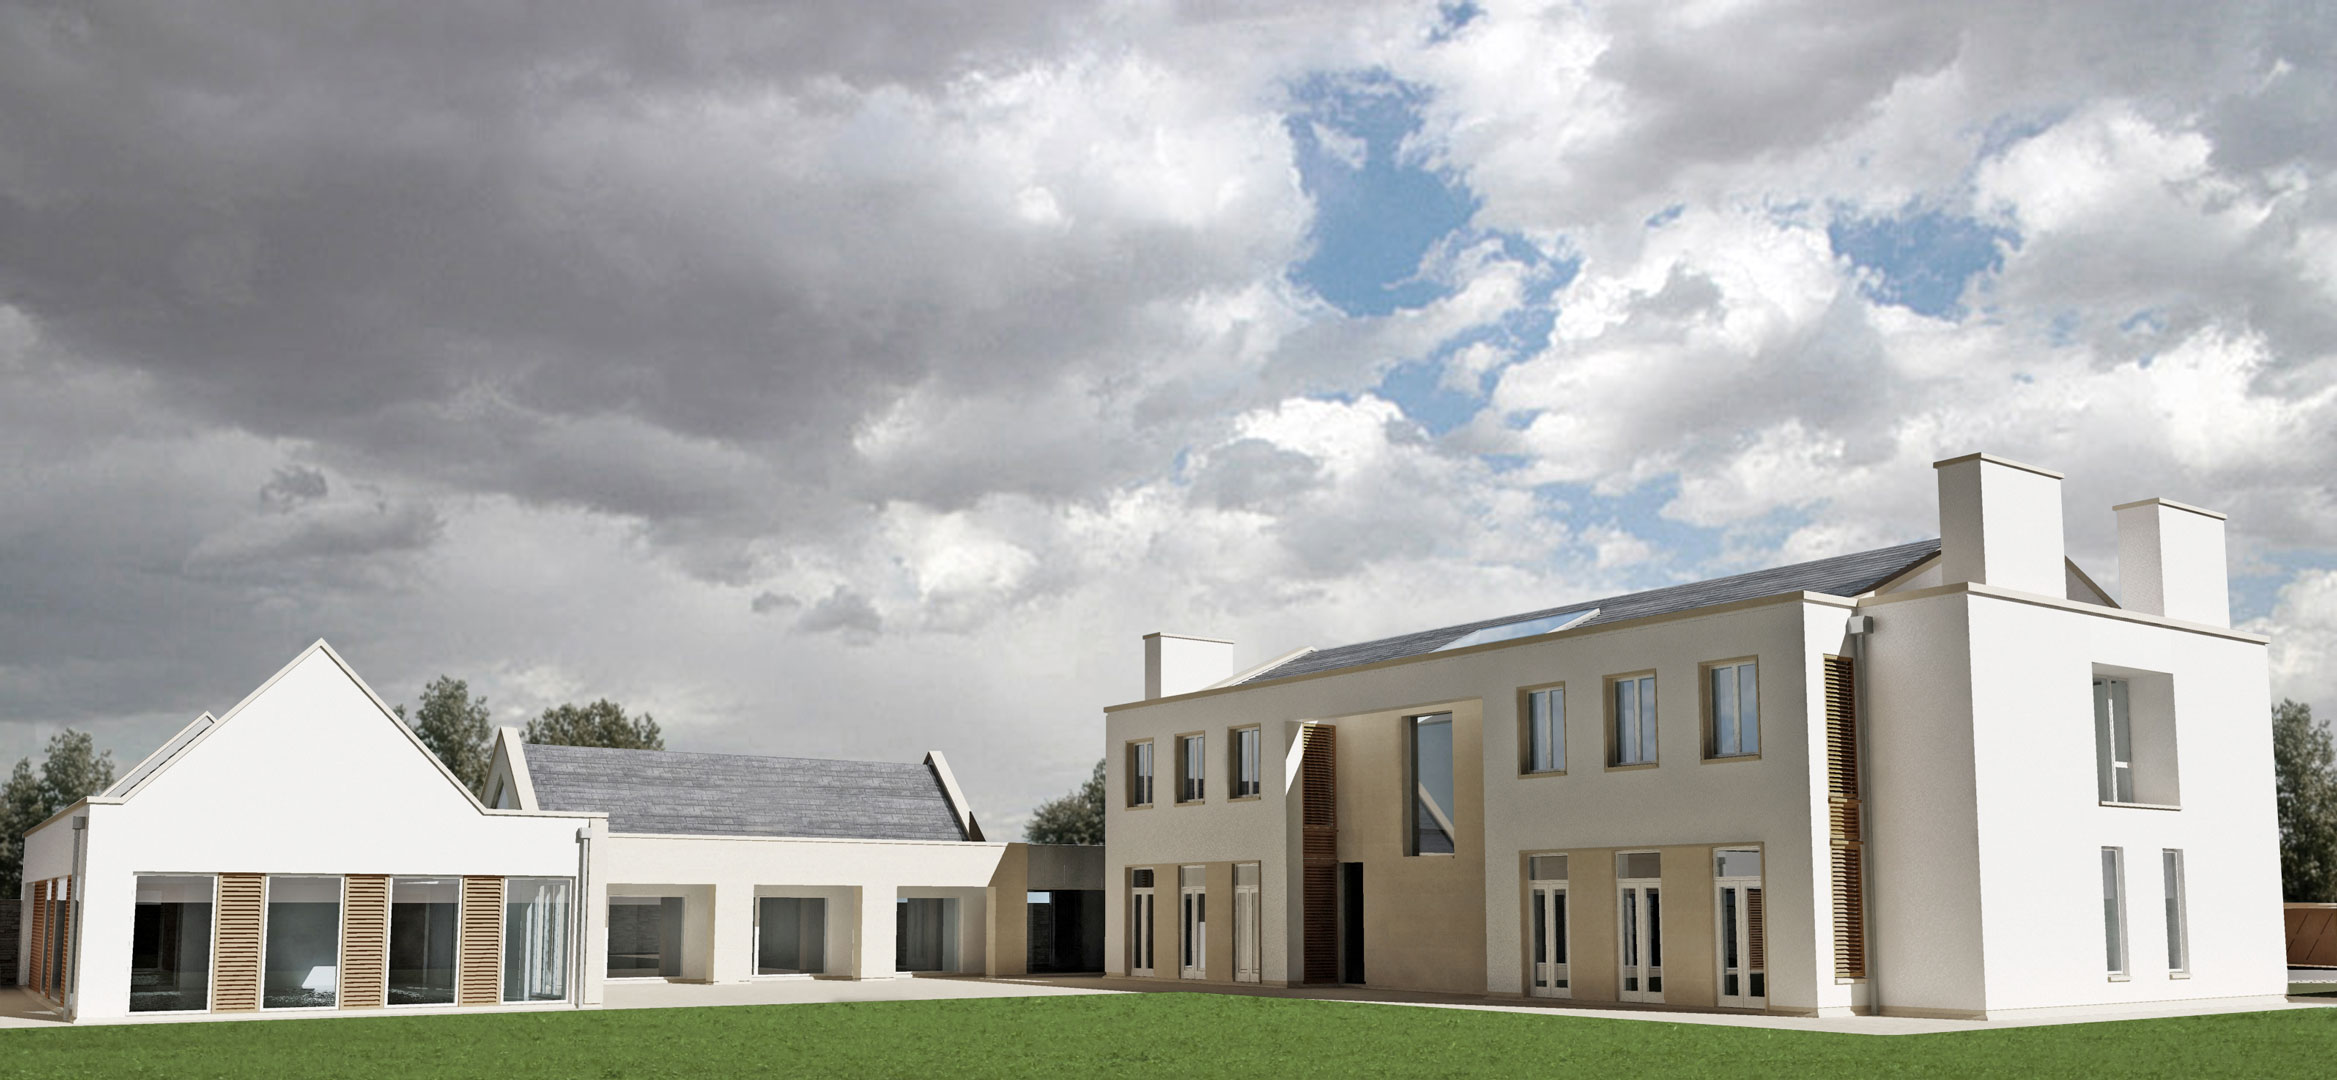 laleston_house-cgi_rear